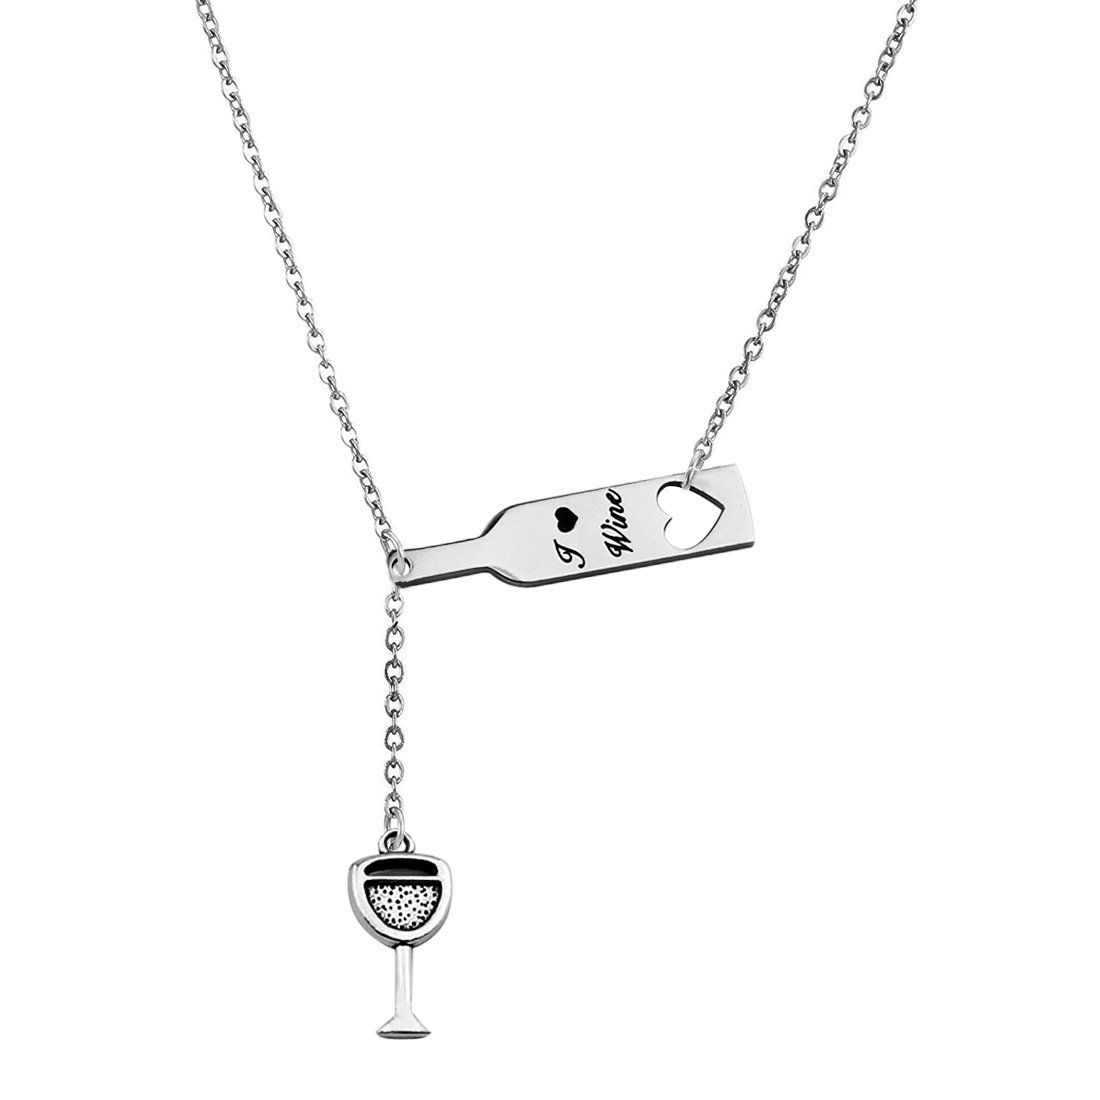 Zuo Bao Wine Necklace for Women, Love Heart Wine Cup Lariat Y Necklace, Stainless Steel Wine Jewelry Gift for Wine Lovers (Y-Necklace-1)